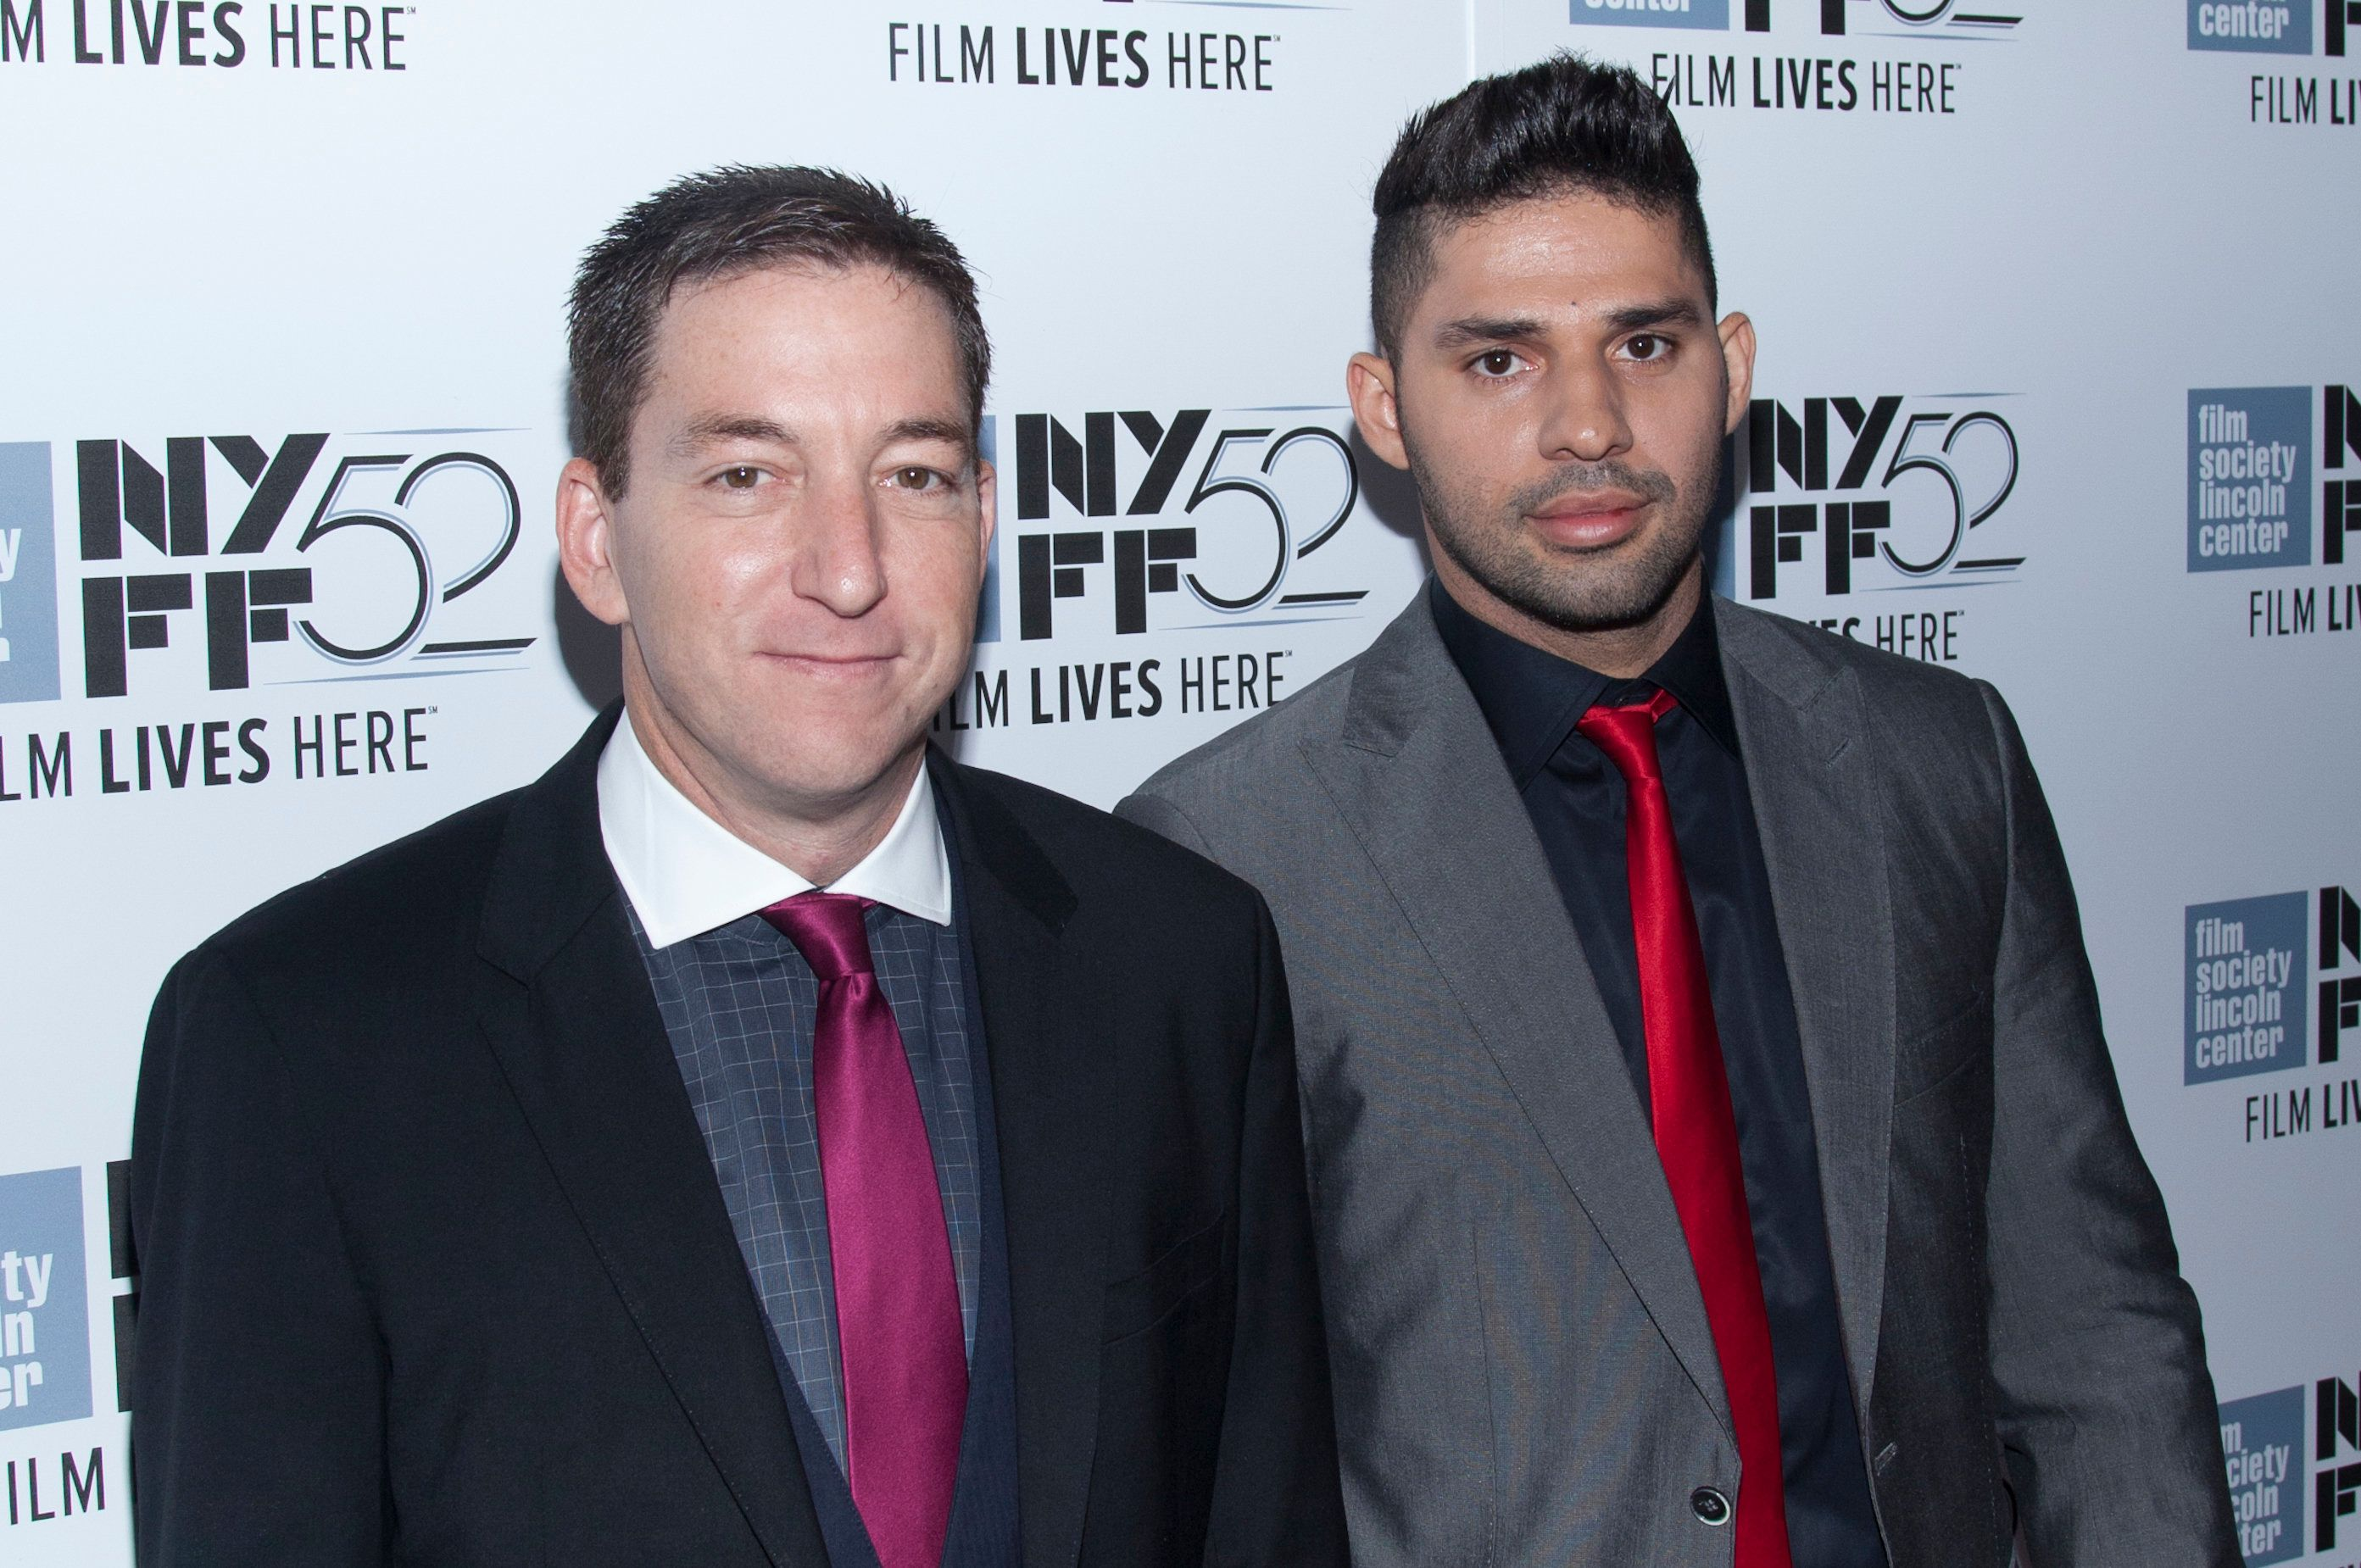 Glenn Greenwald and David Miranda attend the 'Citizenfour' premiere during the 52nd New York Film Festival at Alice Tully Hall in New York City. �� LAN (Photo by Lars Niki/Corbis via Getty Images)